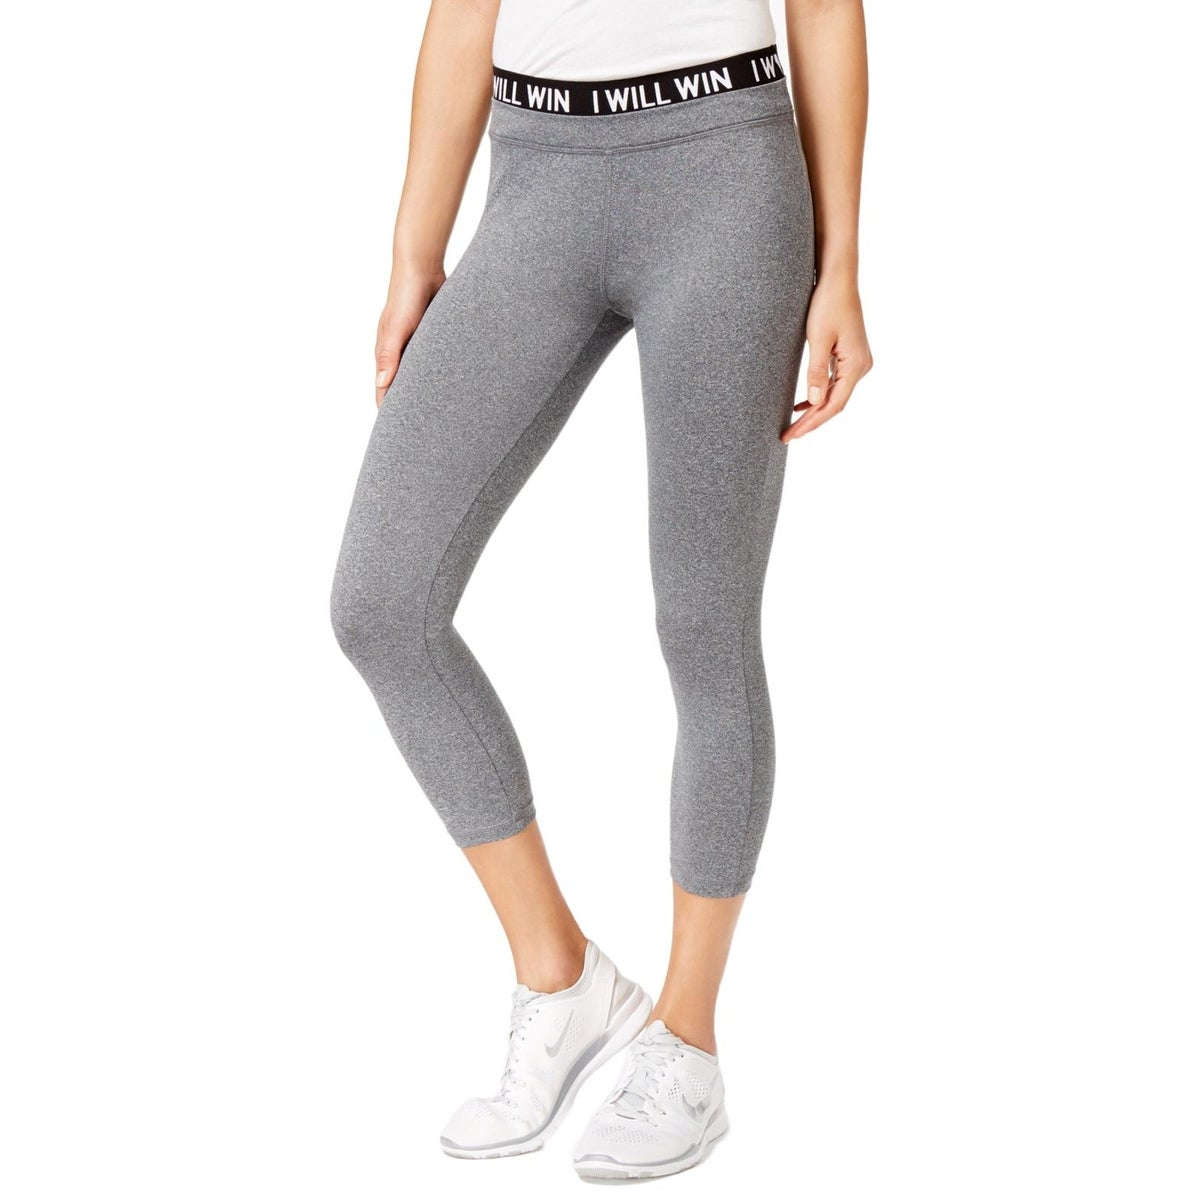 74ee25d2e35c Energie Athletic Clothing | Find Great Women's Sport Clothing Deals  Shopping at Overstock